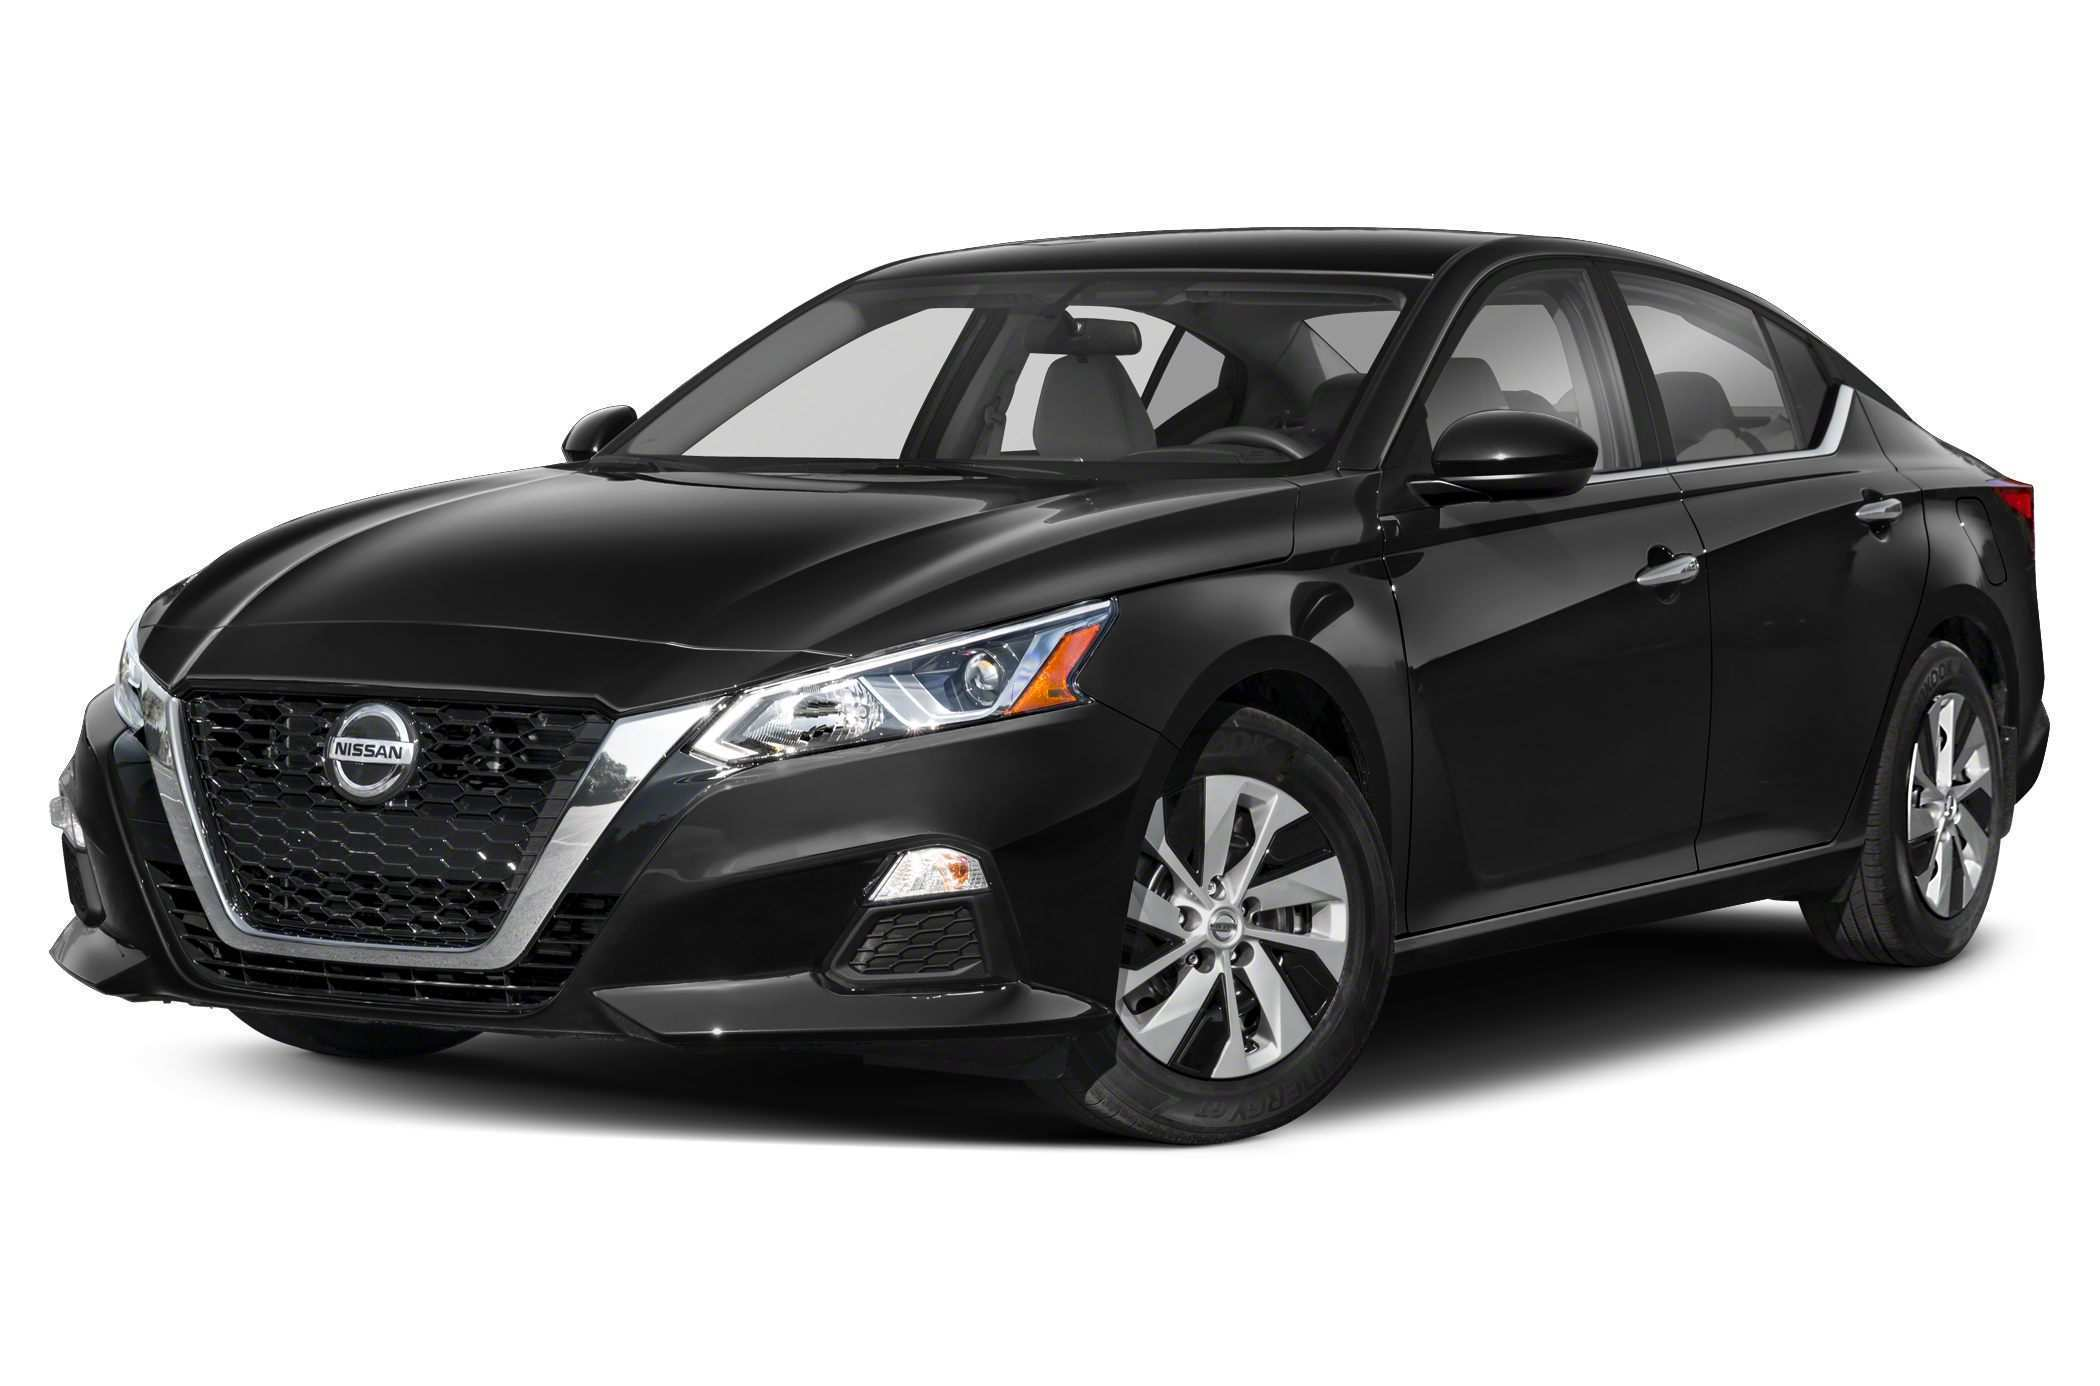 16 The Best Nissan Altima 2019 Price And Review